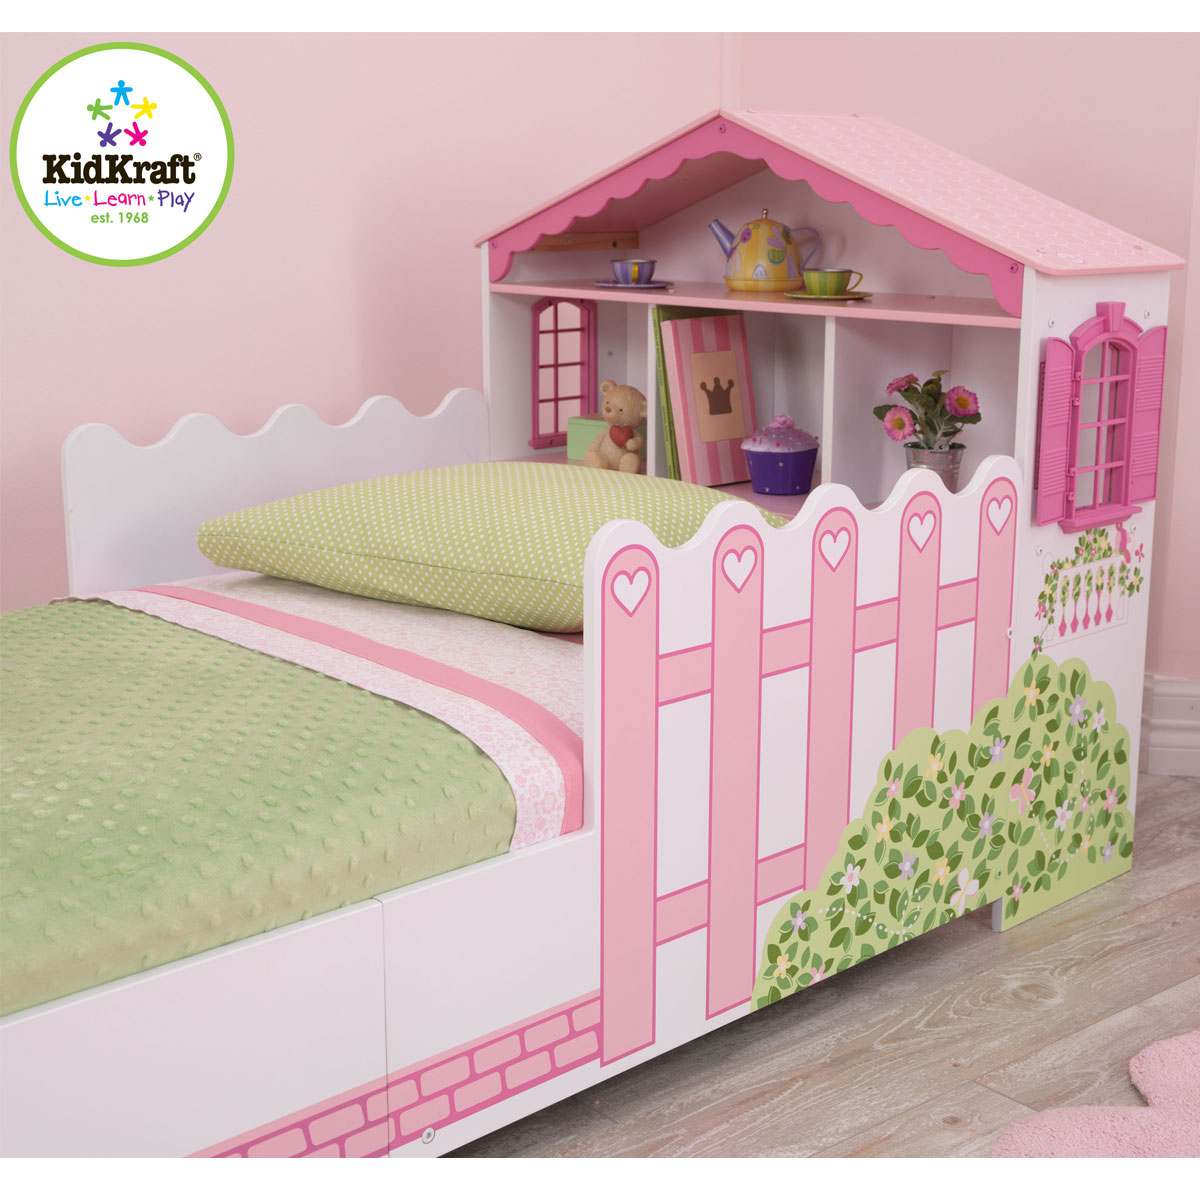 Kidkraft Toddler Bed Kidkraft Dollhouse Toddler Bed 76255